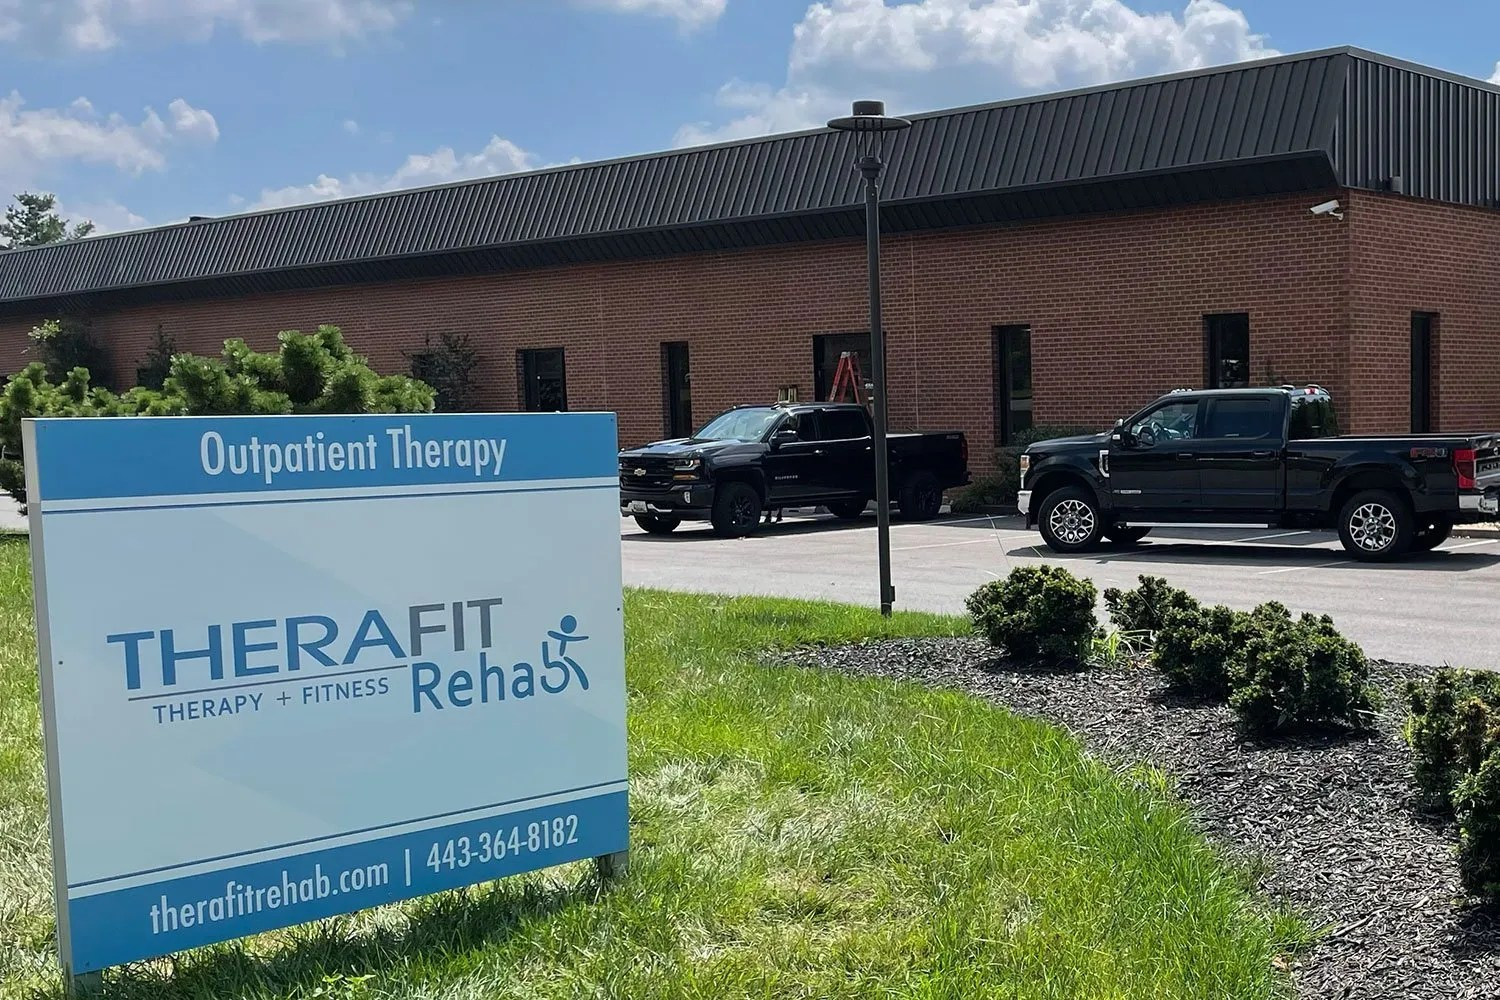 Therafit Rehab Outpatient Therapy PT, OT, and SLP in Woodlawn, MD 1500wX1000h